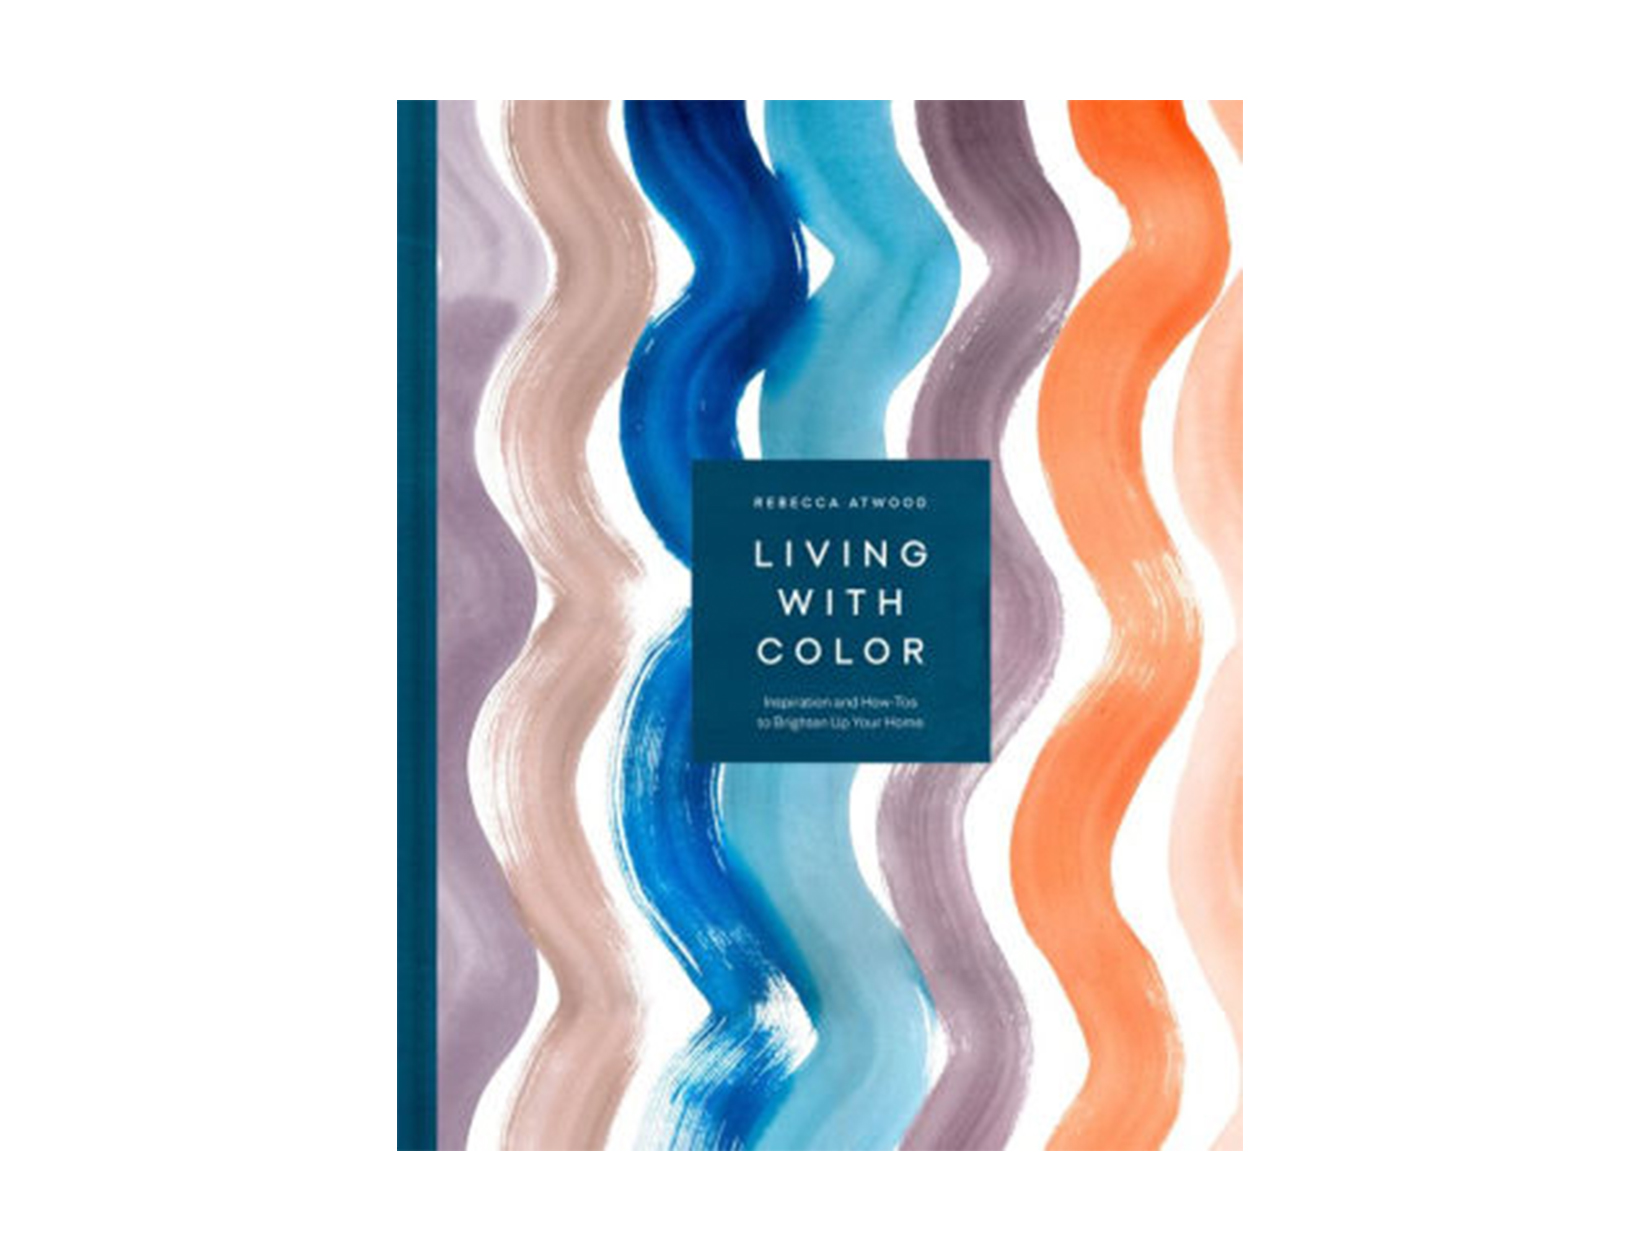 <em>Living with Color</em> by Rebecca Atwood